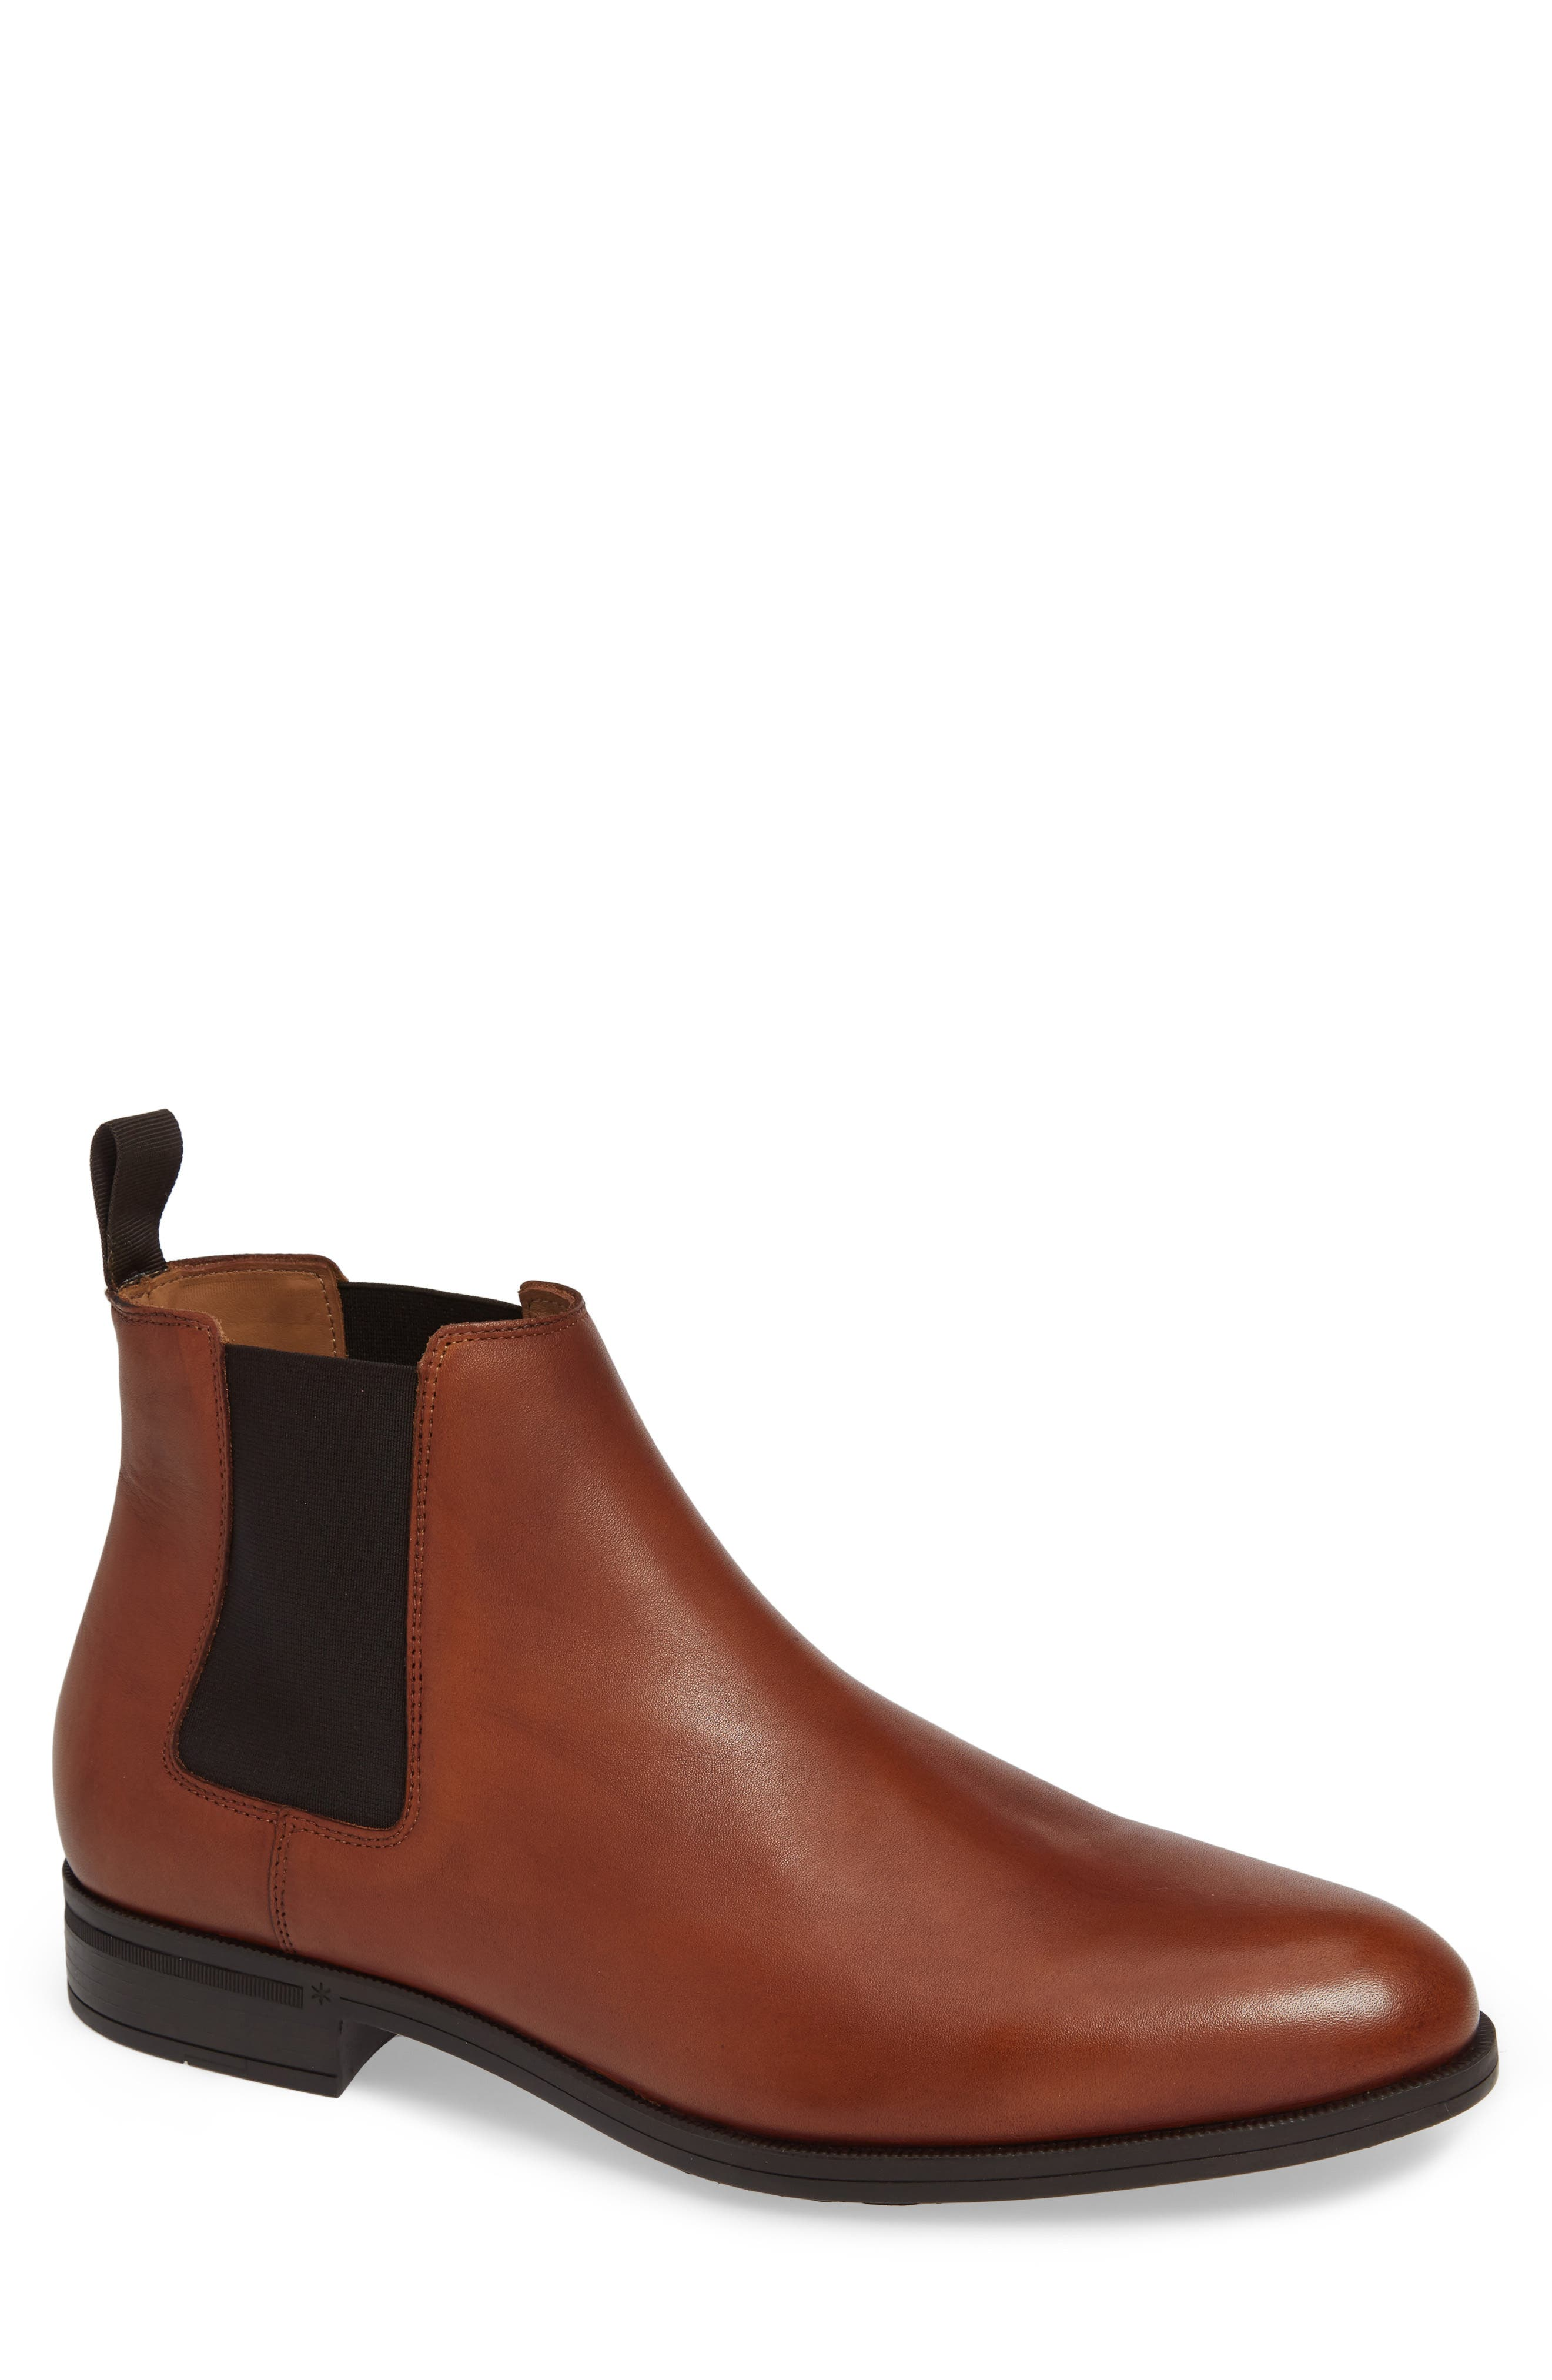 VINCE CAMUTO Ivo Mid Chelsea Boot, Main, color, COGNAC LEATHER